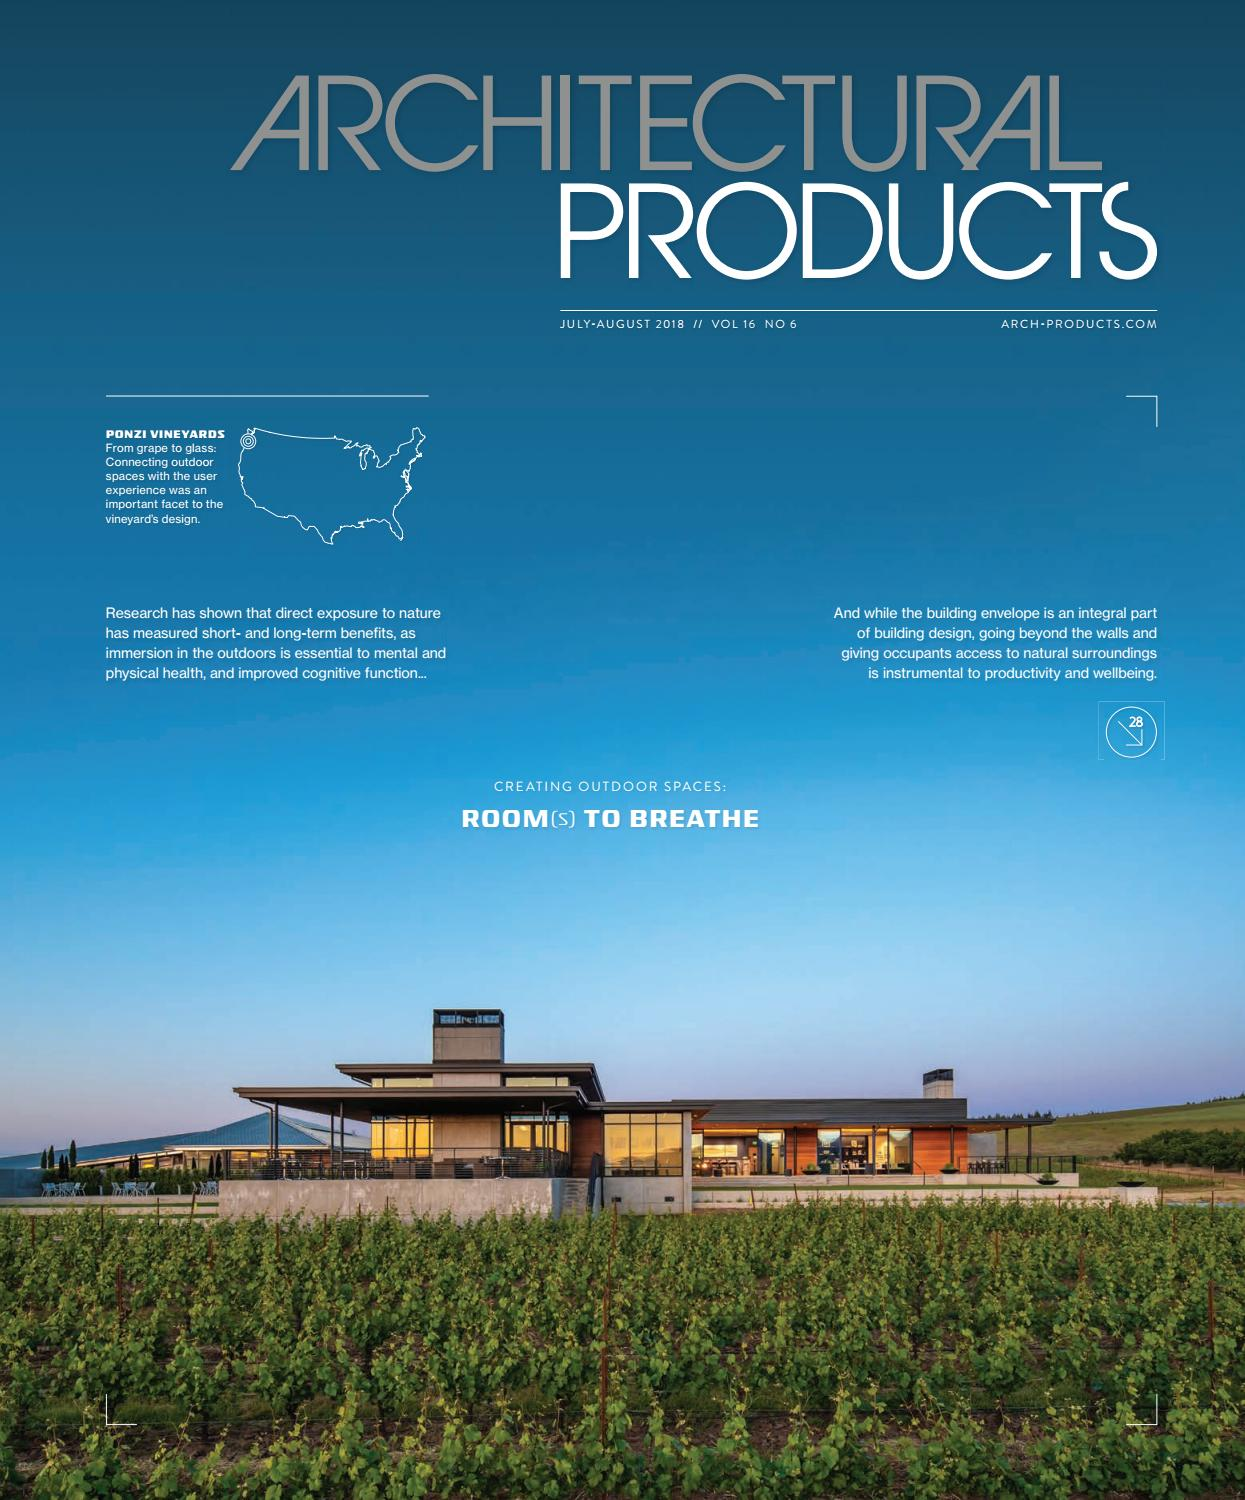 Architectural Products July August 2018 By Construction Business Printed Circuit Board Prototype Product Photosprinted Media Issuu